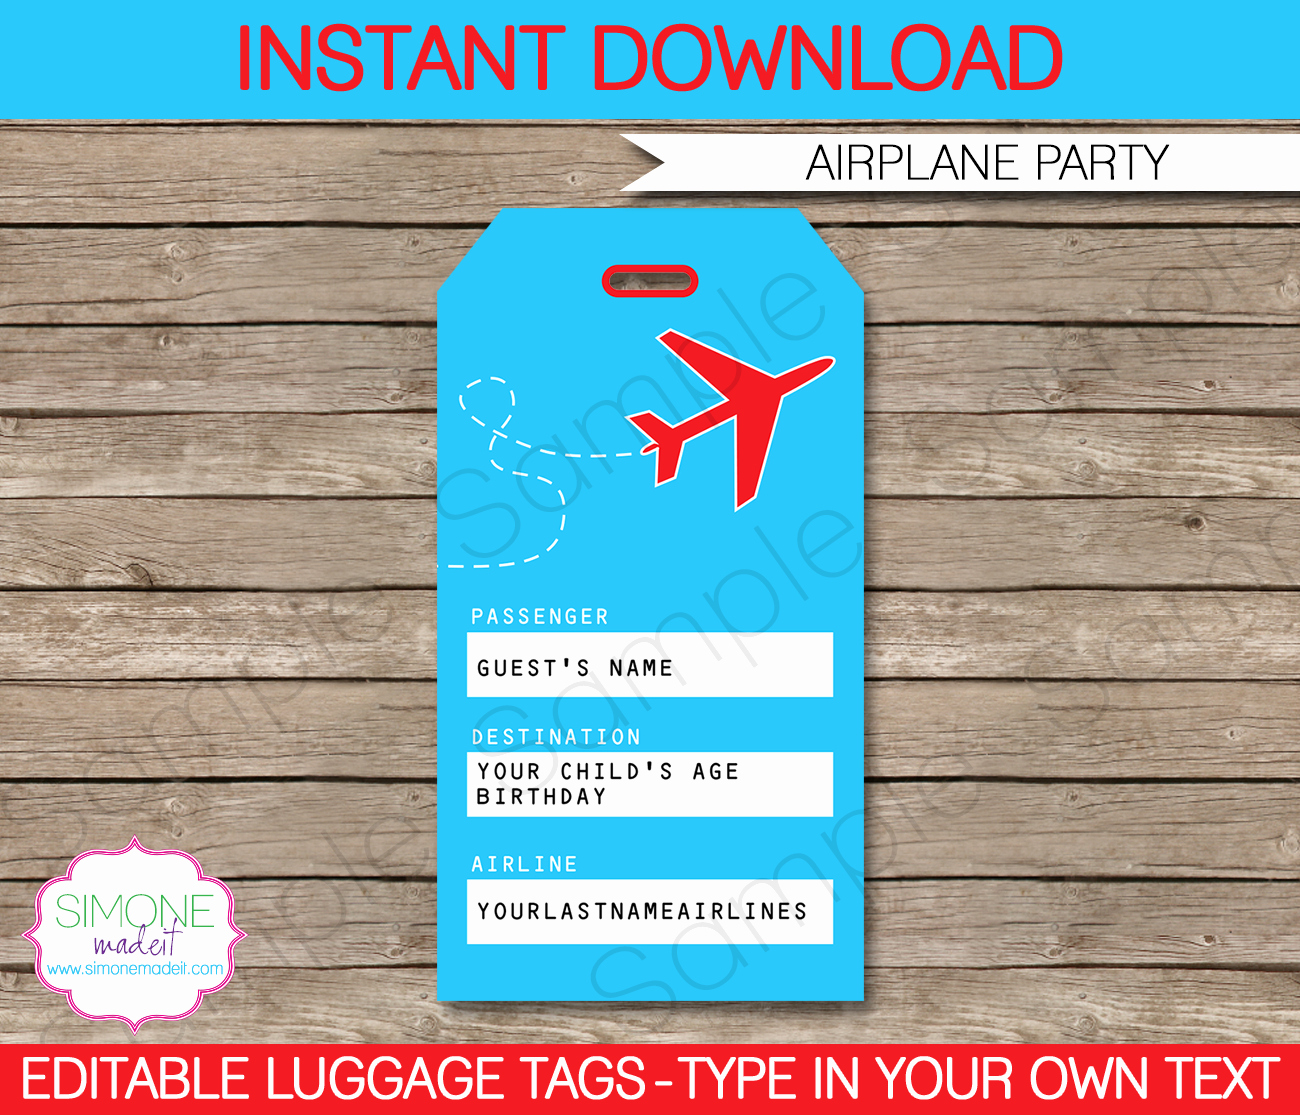 Luggage Tag Template Free Printable Best Of Airplane Party Printables Invitations & Decorations